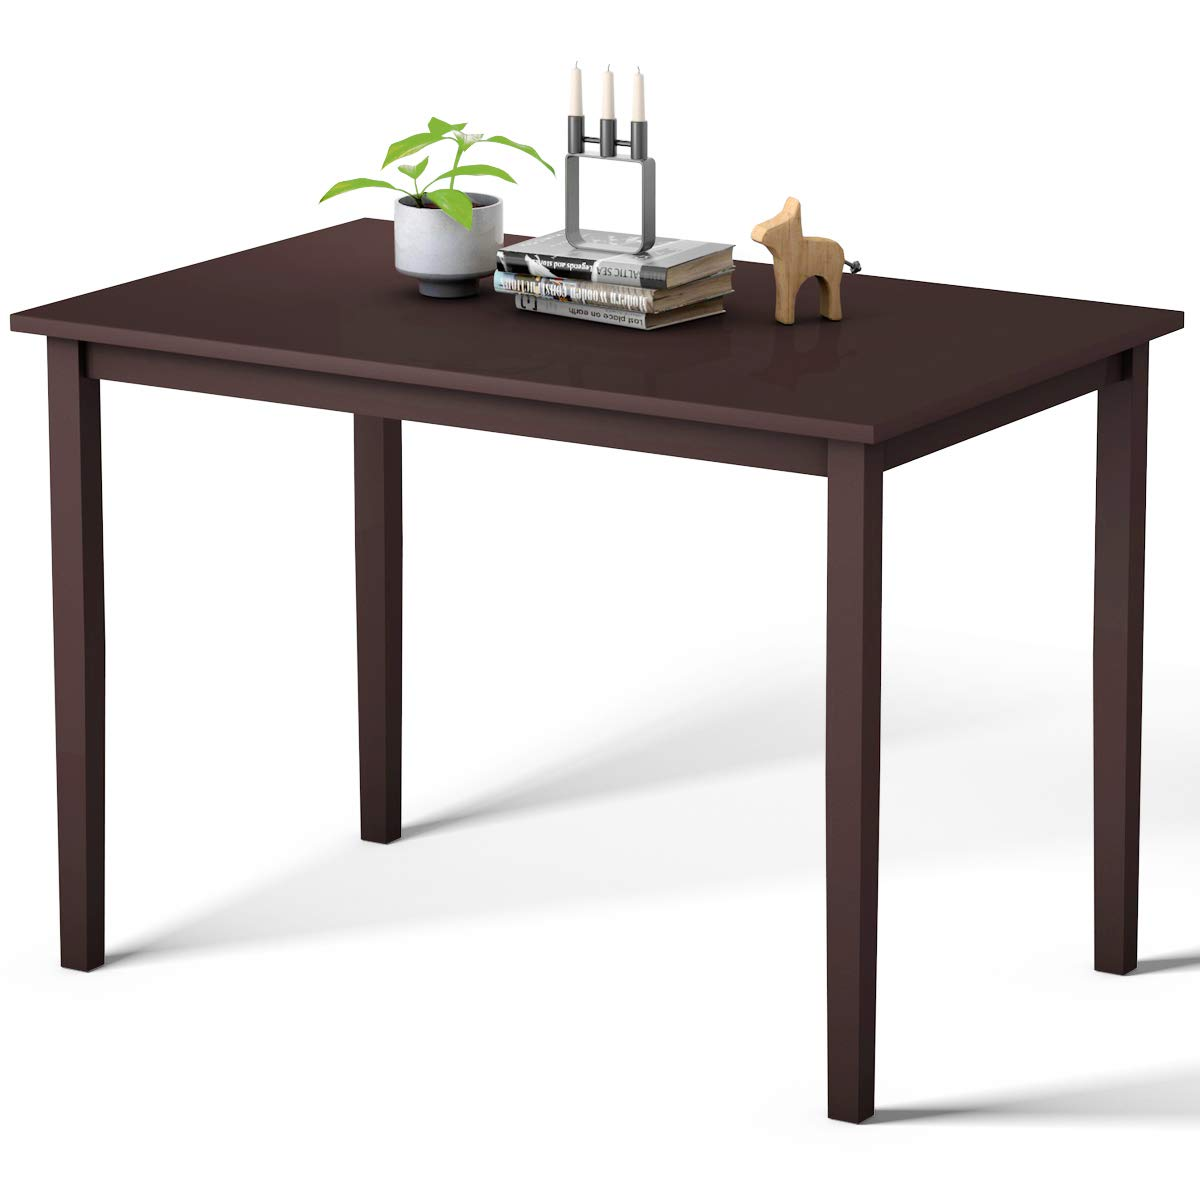 Giantex Dining Table Modern Rectangular Computer Desk Table with Wood Legs Strong Kitchen Furniture Writing Desk Table, Espresso